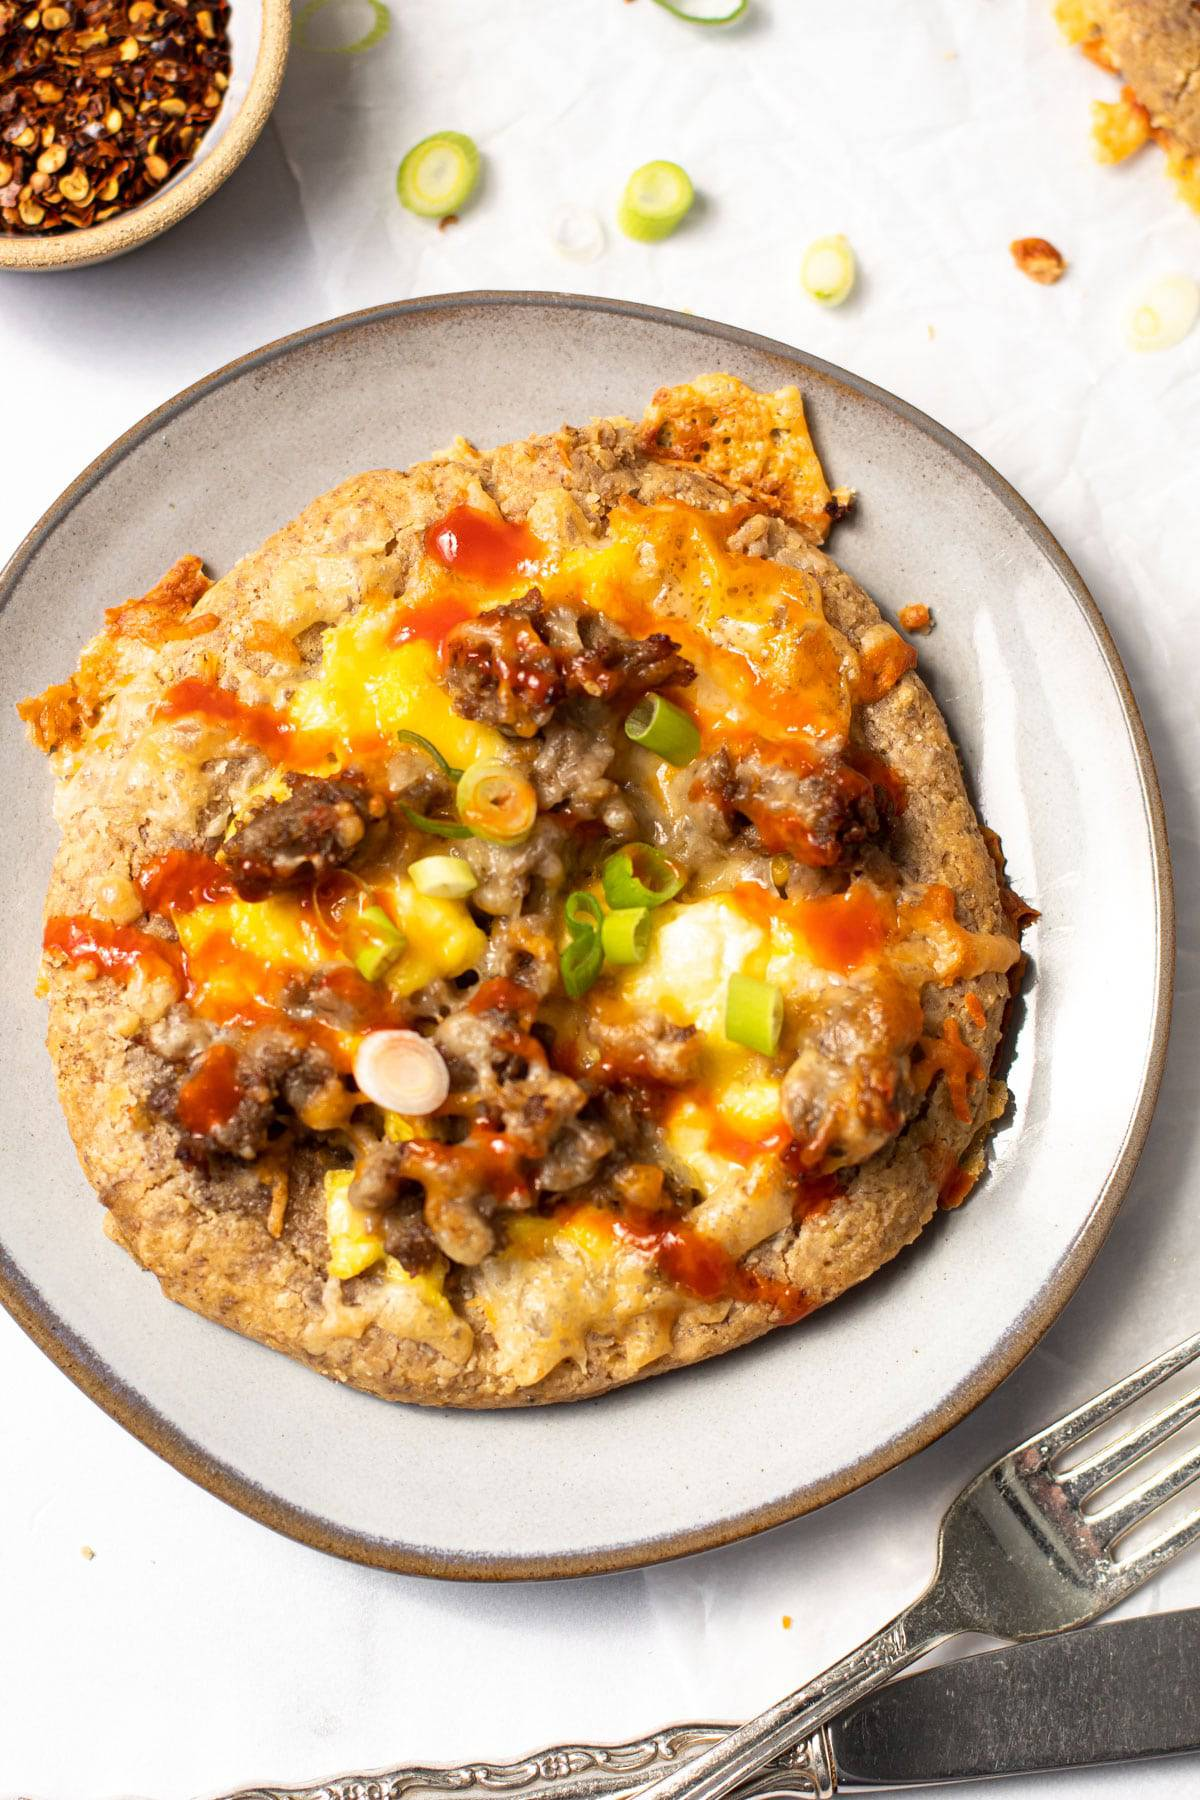 Breakfast pizza on a plate.